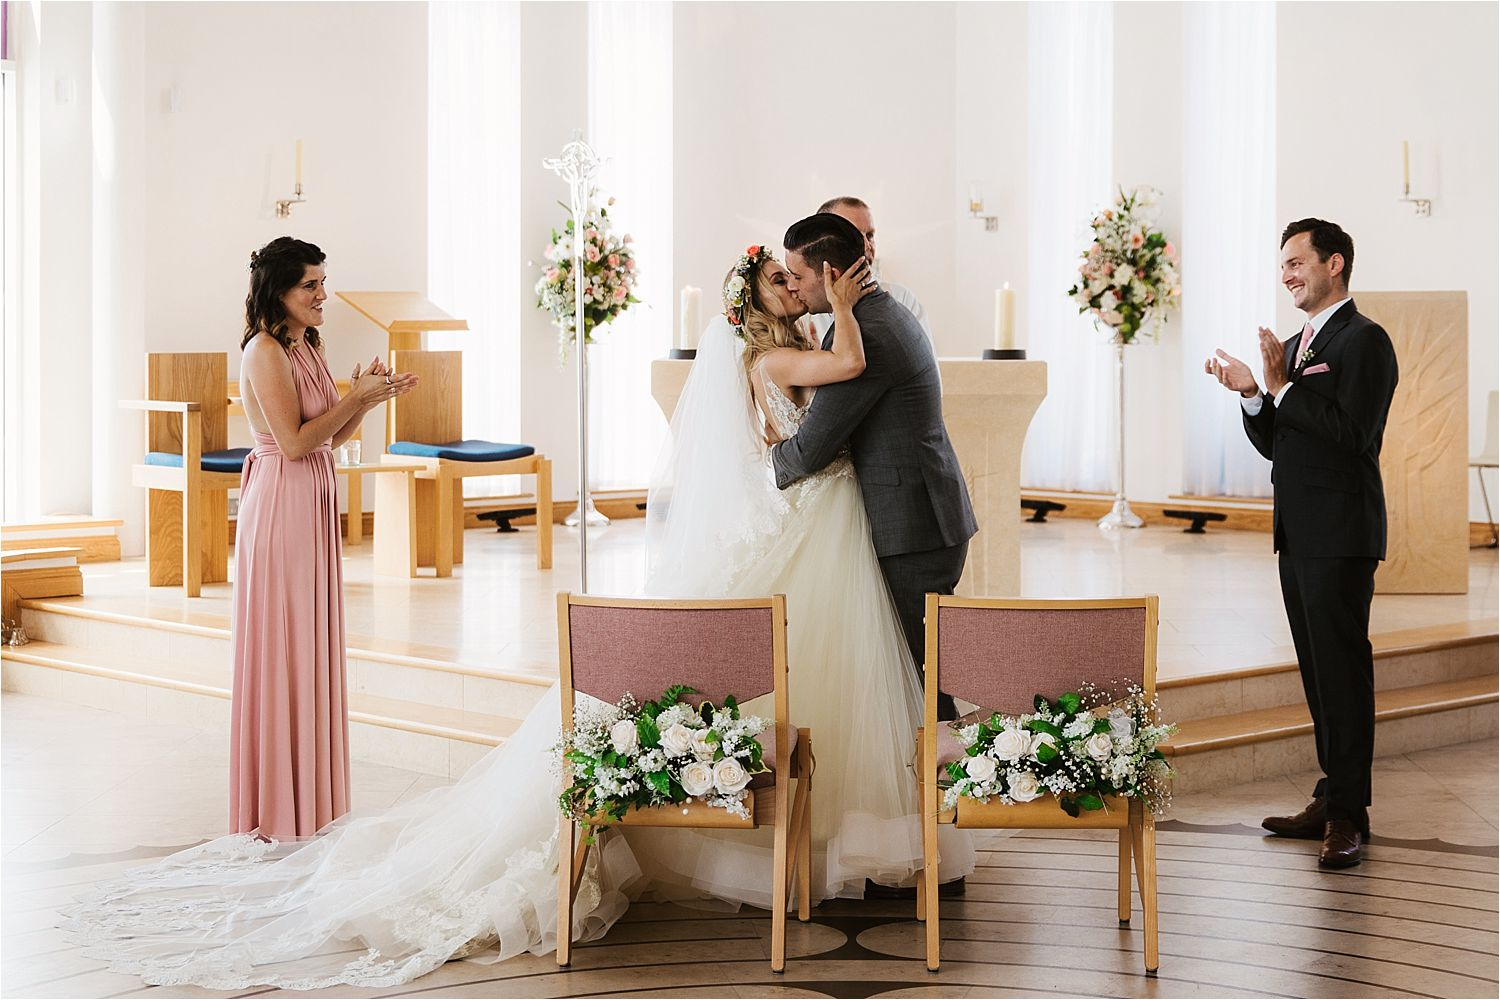 Bride and groom first kiss, wedding flowers by Green Earth Flowers, Cheshire. Dress by Lazarro